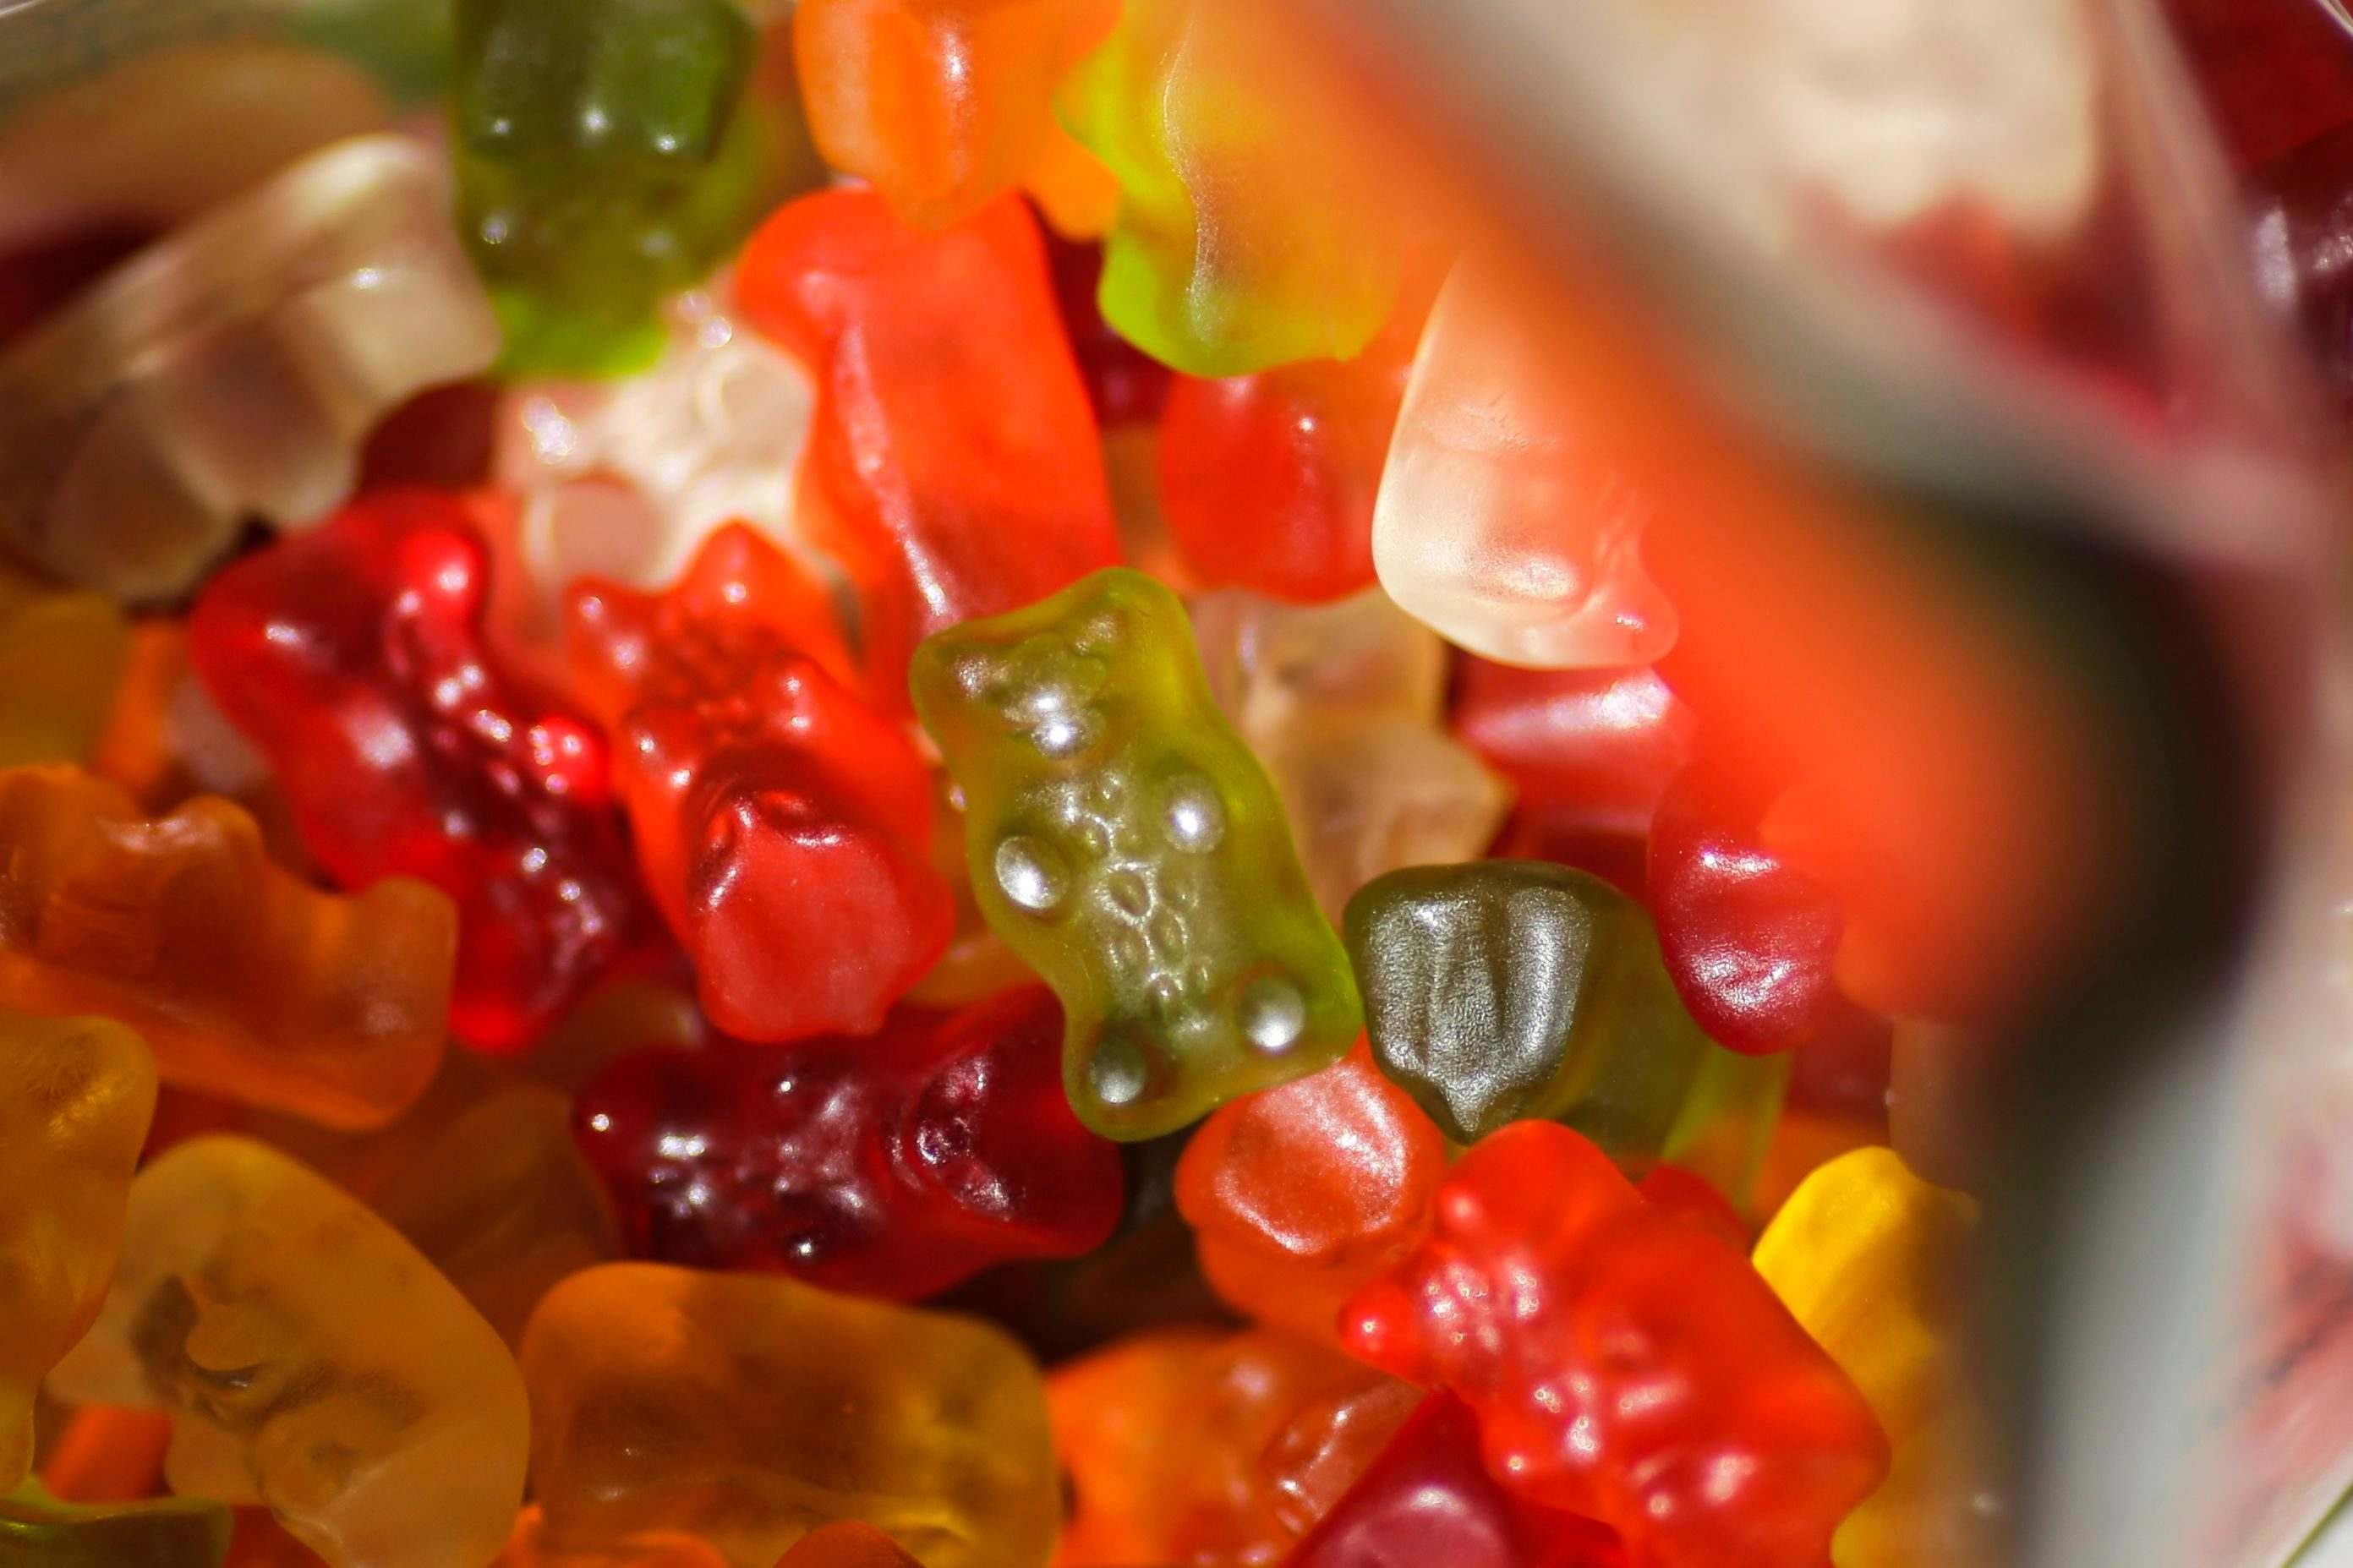 """Mandatory Credit: Photo by AP/Shutterstock (8552360a) Haribo gummy bears sit in their package in Berlin, Germany, Friday, 24, 2017. Germany's iconic gummy bear will soon be """"Made in USA."""" Bonn-based Haribo, which invented the gummy bear nearly a century ago, said Friday it would open a U.S. factory in Wisconsin in 2020 US Gummy Bears, Berlin, Germany - 24 Mar 2017"""